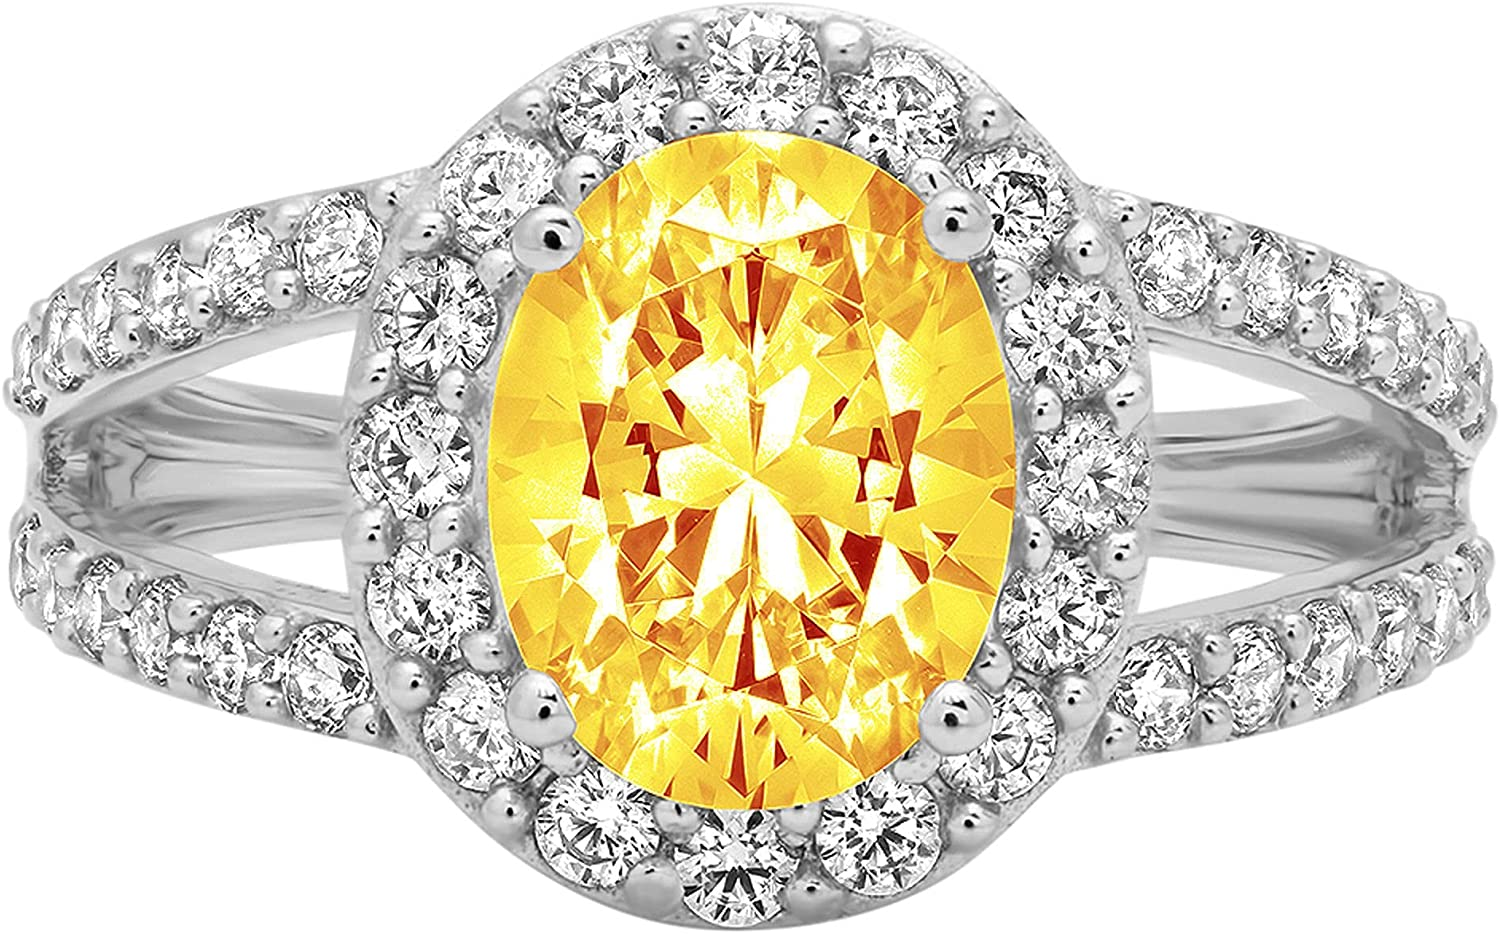 Clara Pucci 2.34 ct Oval Cut Solitaire Accent Halo split shank Stunning Genuine Flawless Natural Yellow Citrine Gem Designer Modern Statement Ring Solid 18K White Gold